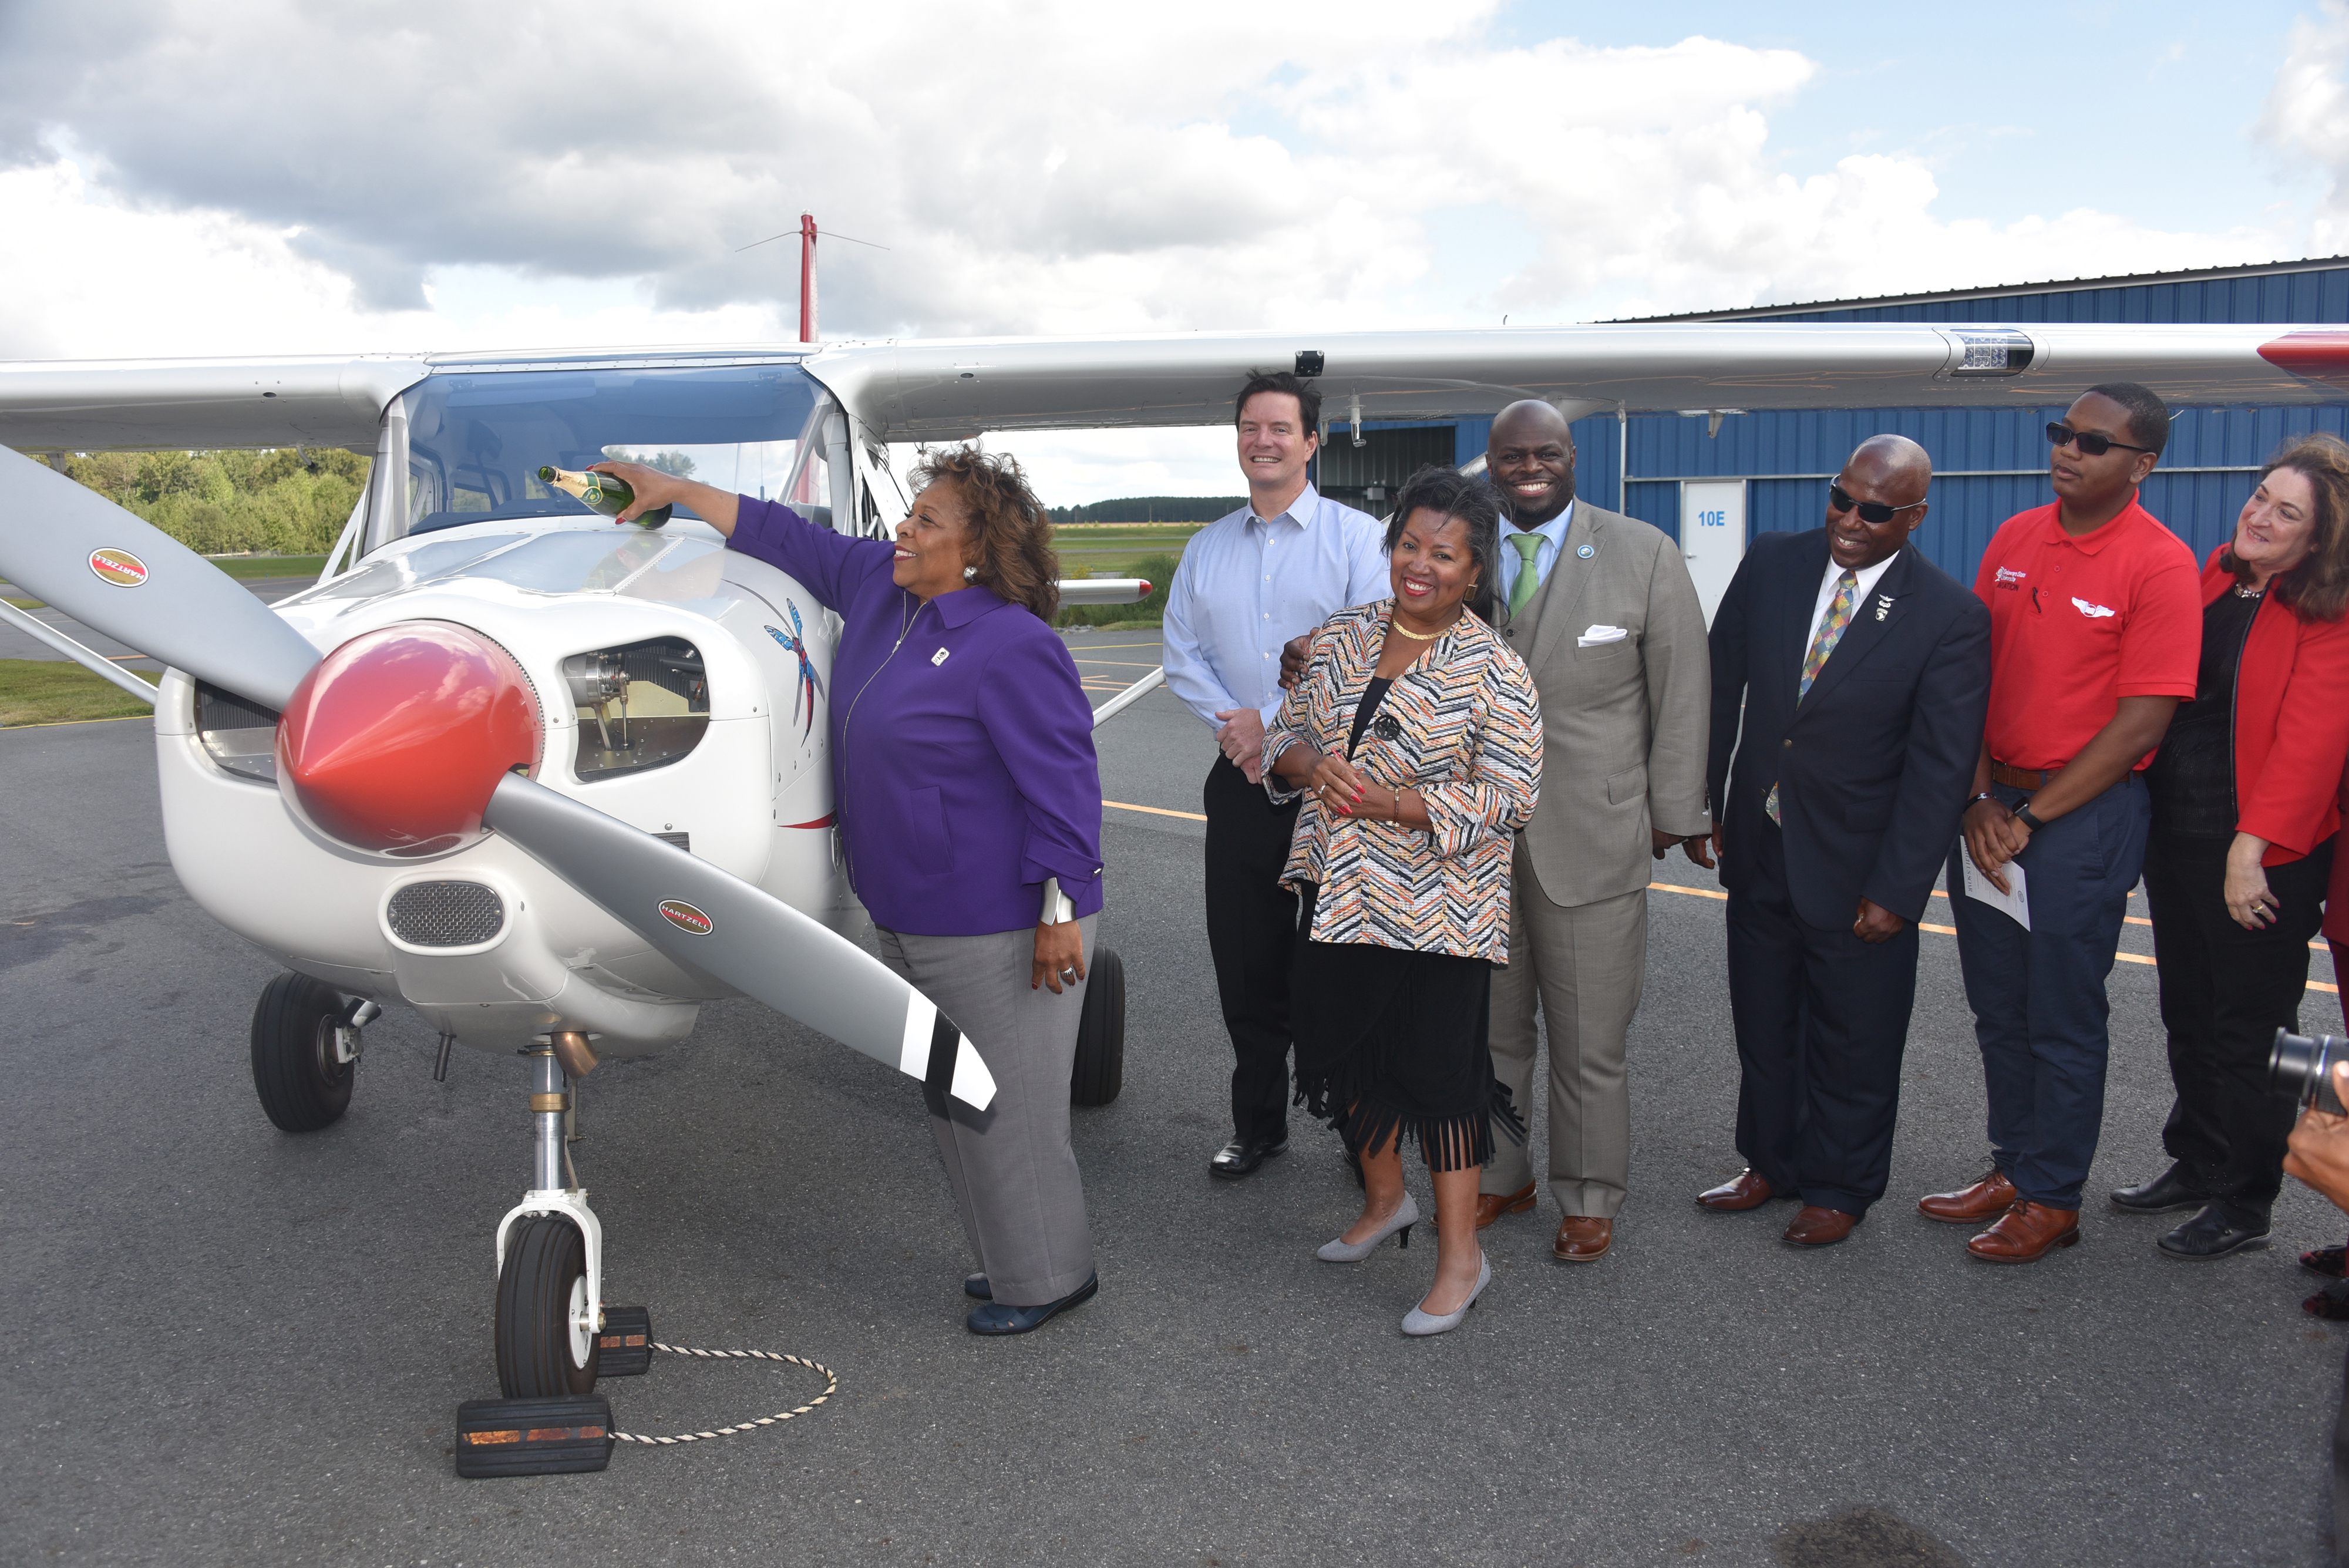 University President Wilma Mishoe christens the Aviation Program's newest aircraft, which is the first of a new 11-plane fleet that is slated to be delivered soon.